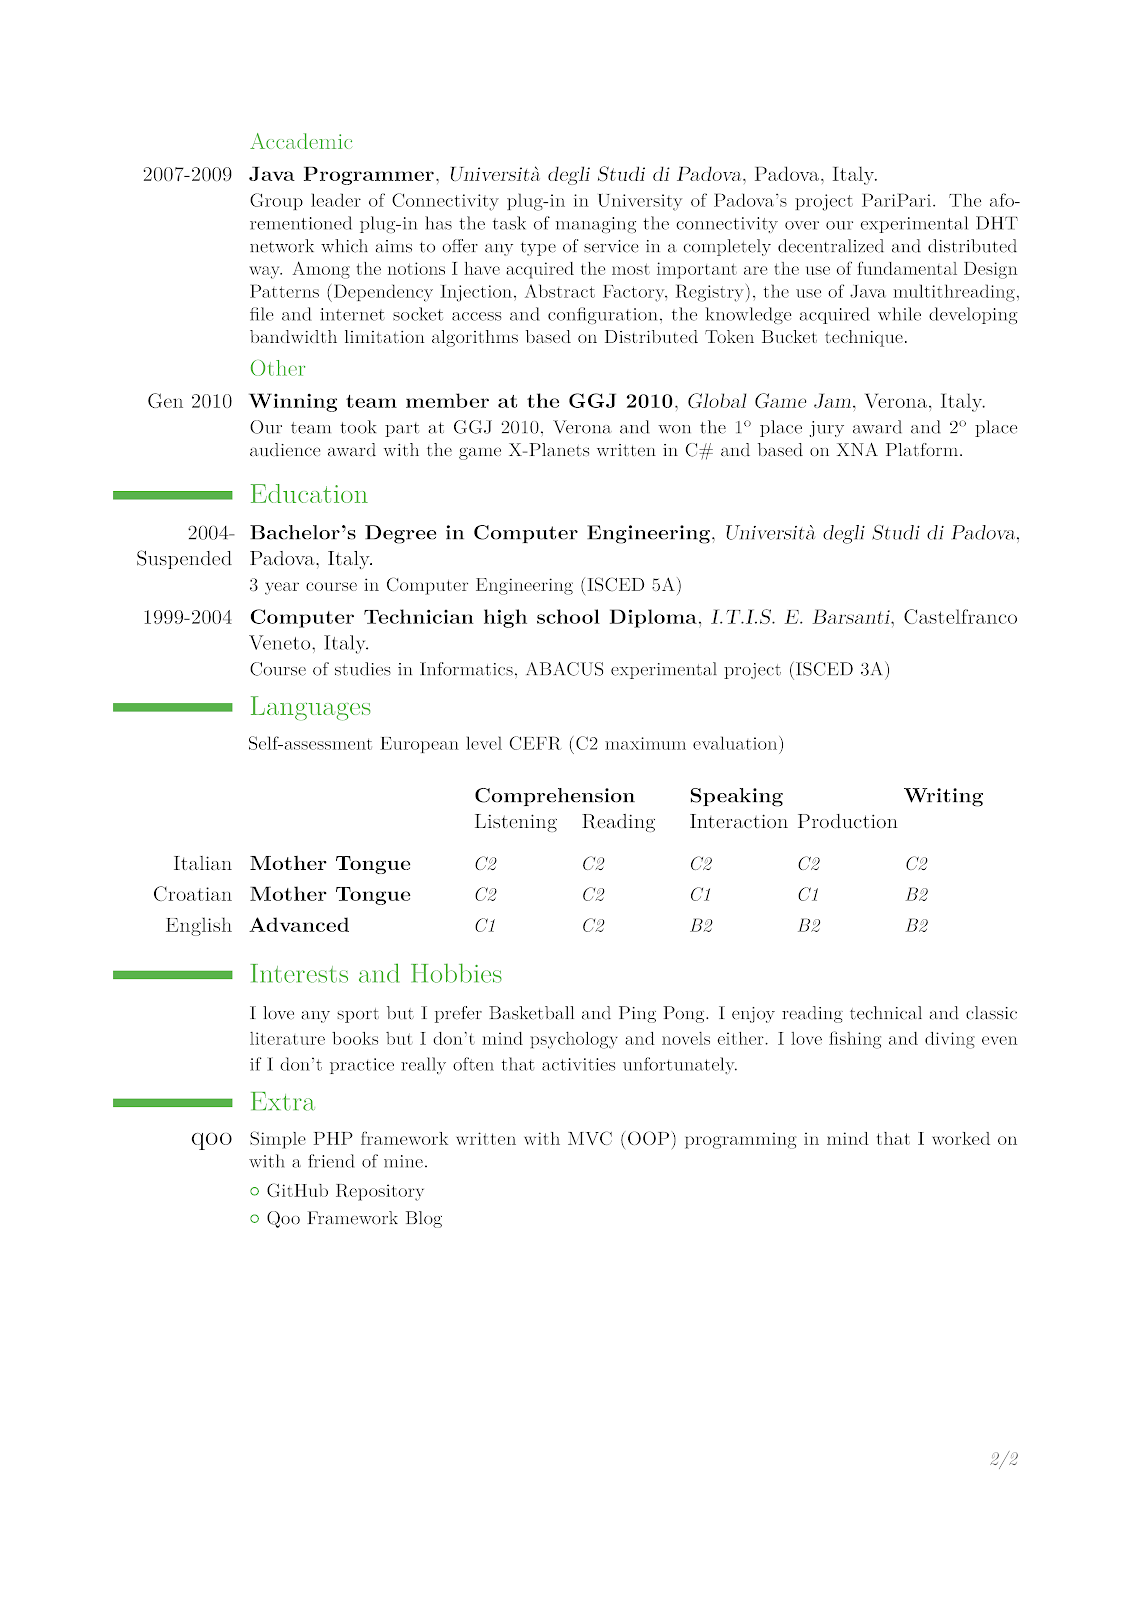 en basic template moderncv_ntrp_templatetex english filled moderncv_ivangreguricortolan_entex pdf - Latex Resume Template